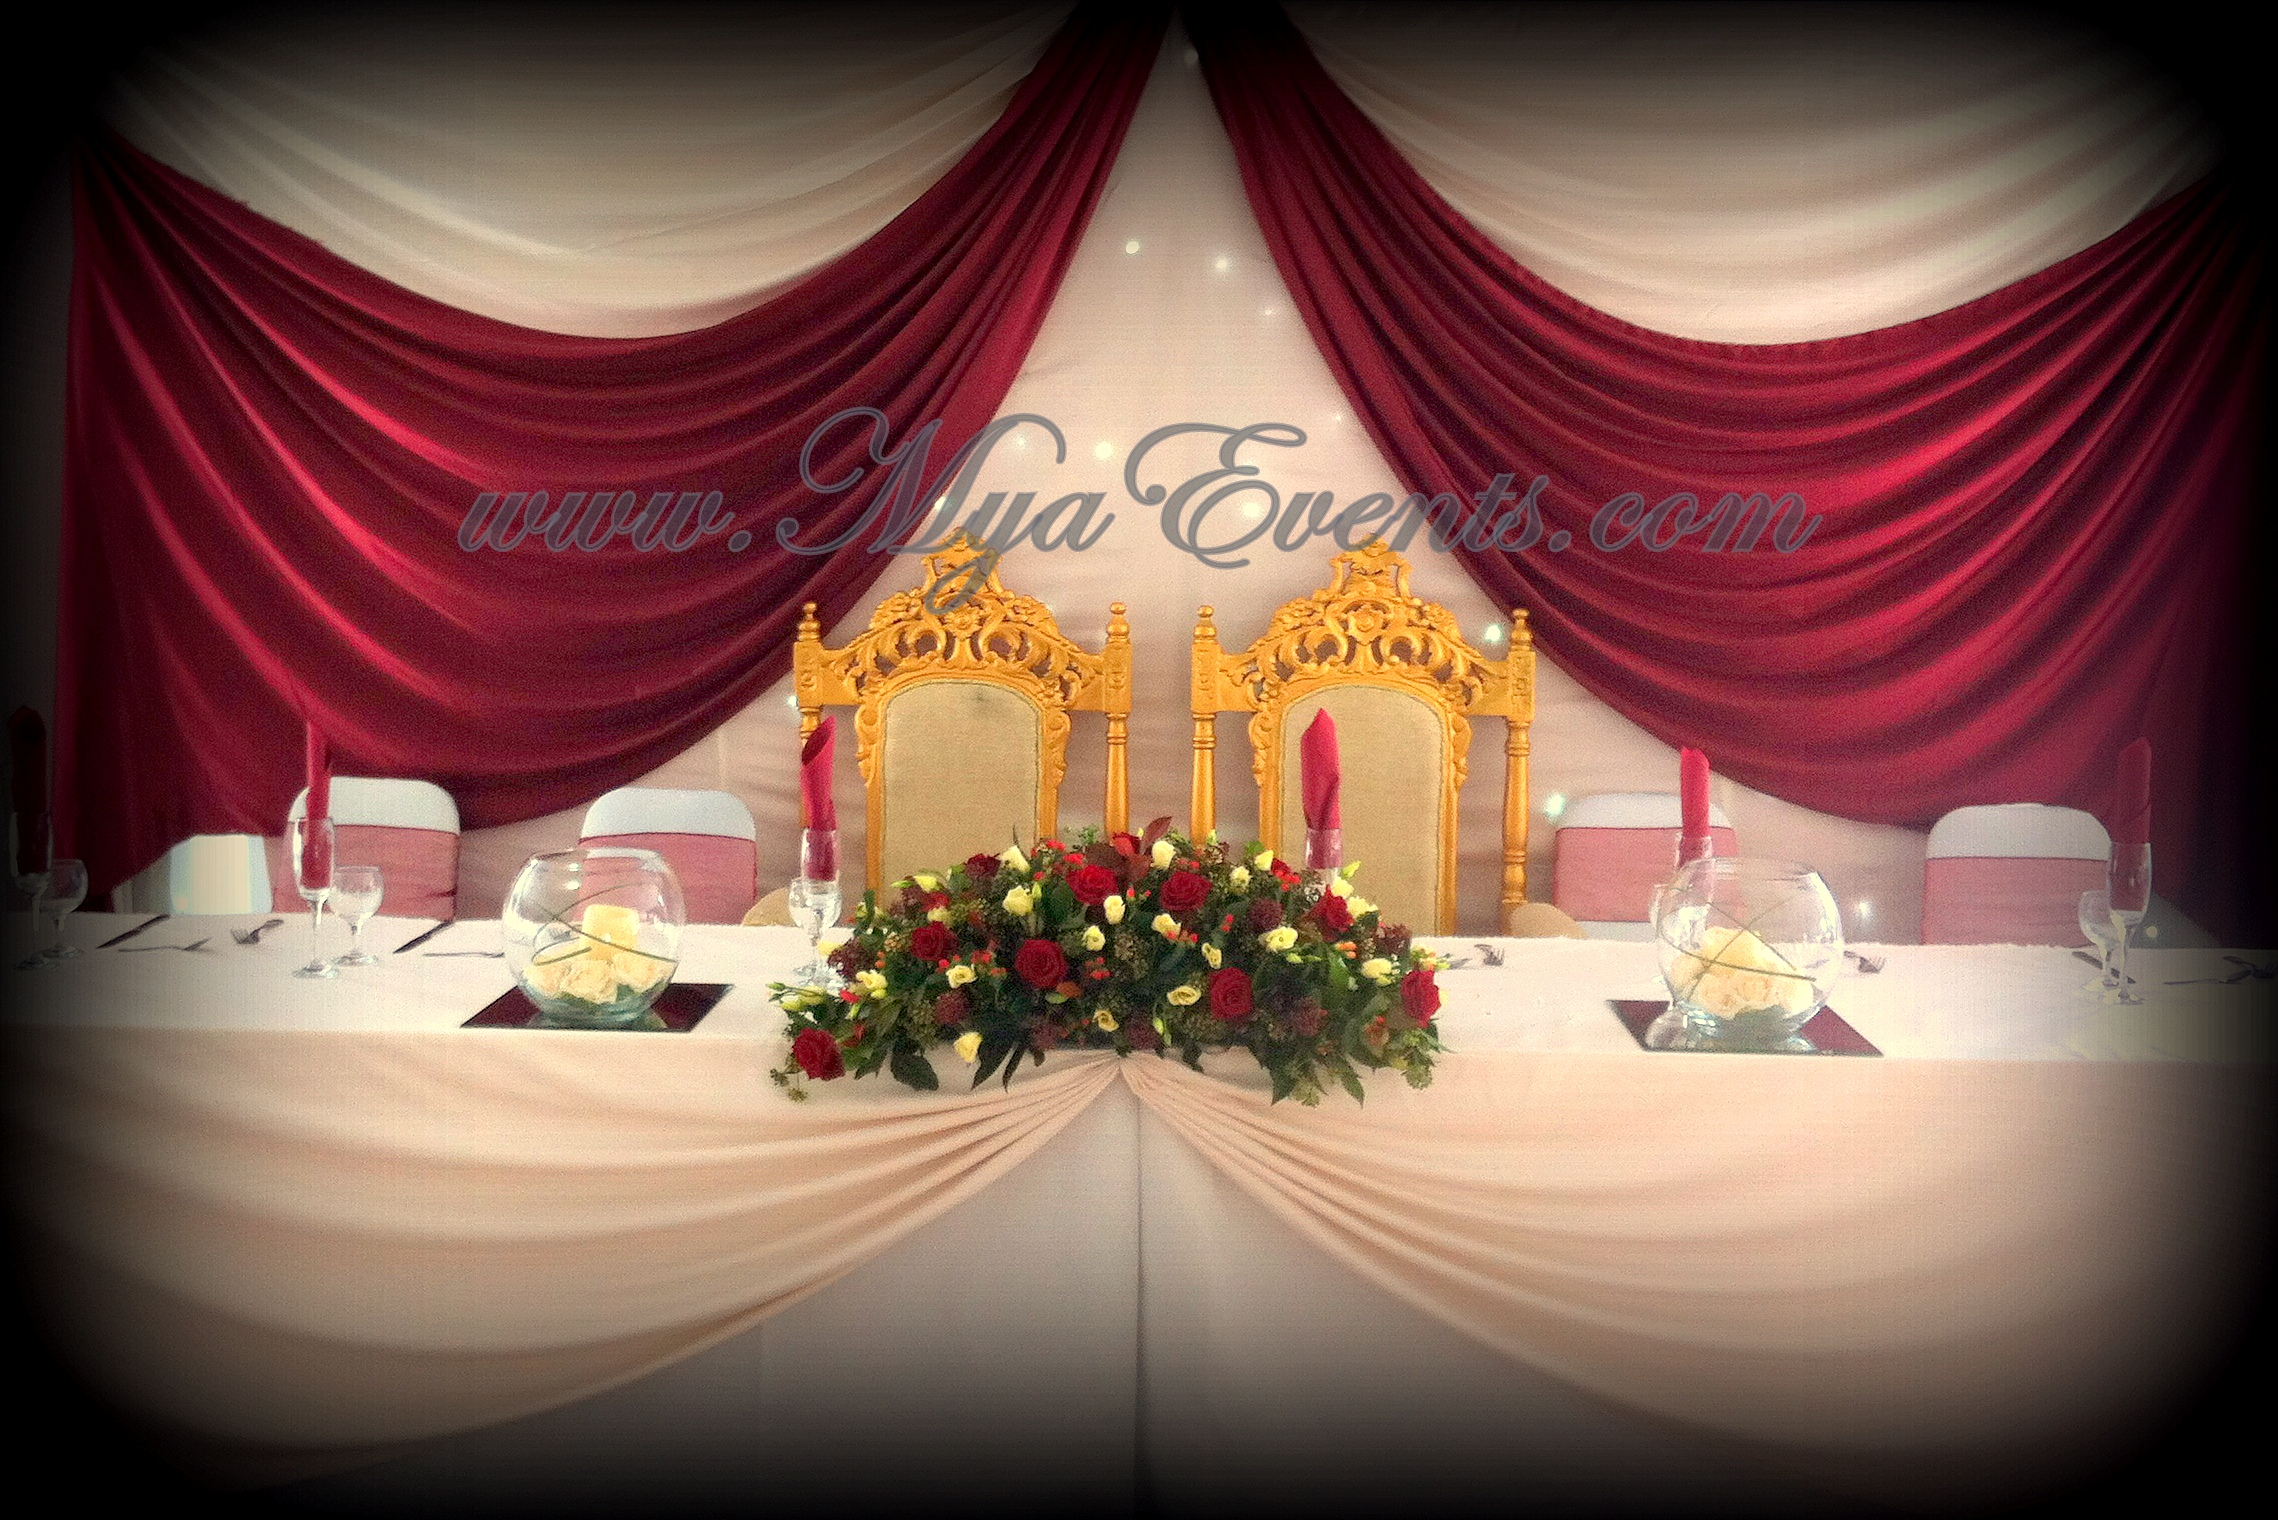 Wedding Table Wedding Table Decorations Hire head table decoration swag hire a35 wedding decorations